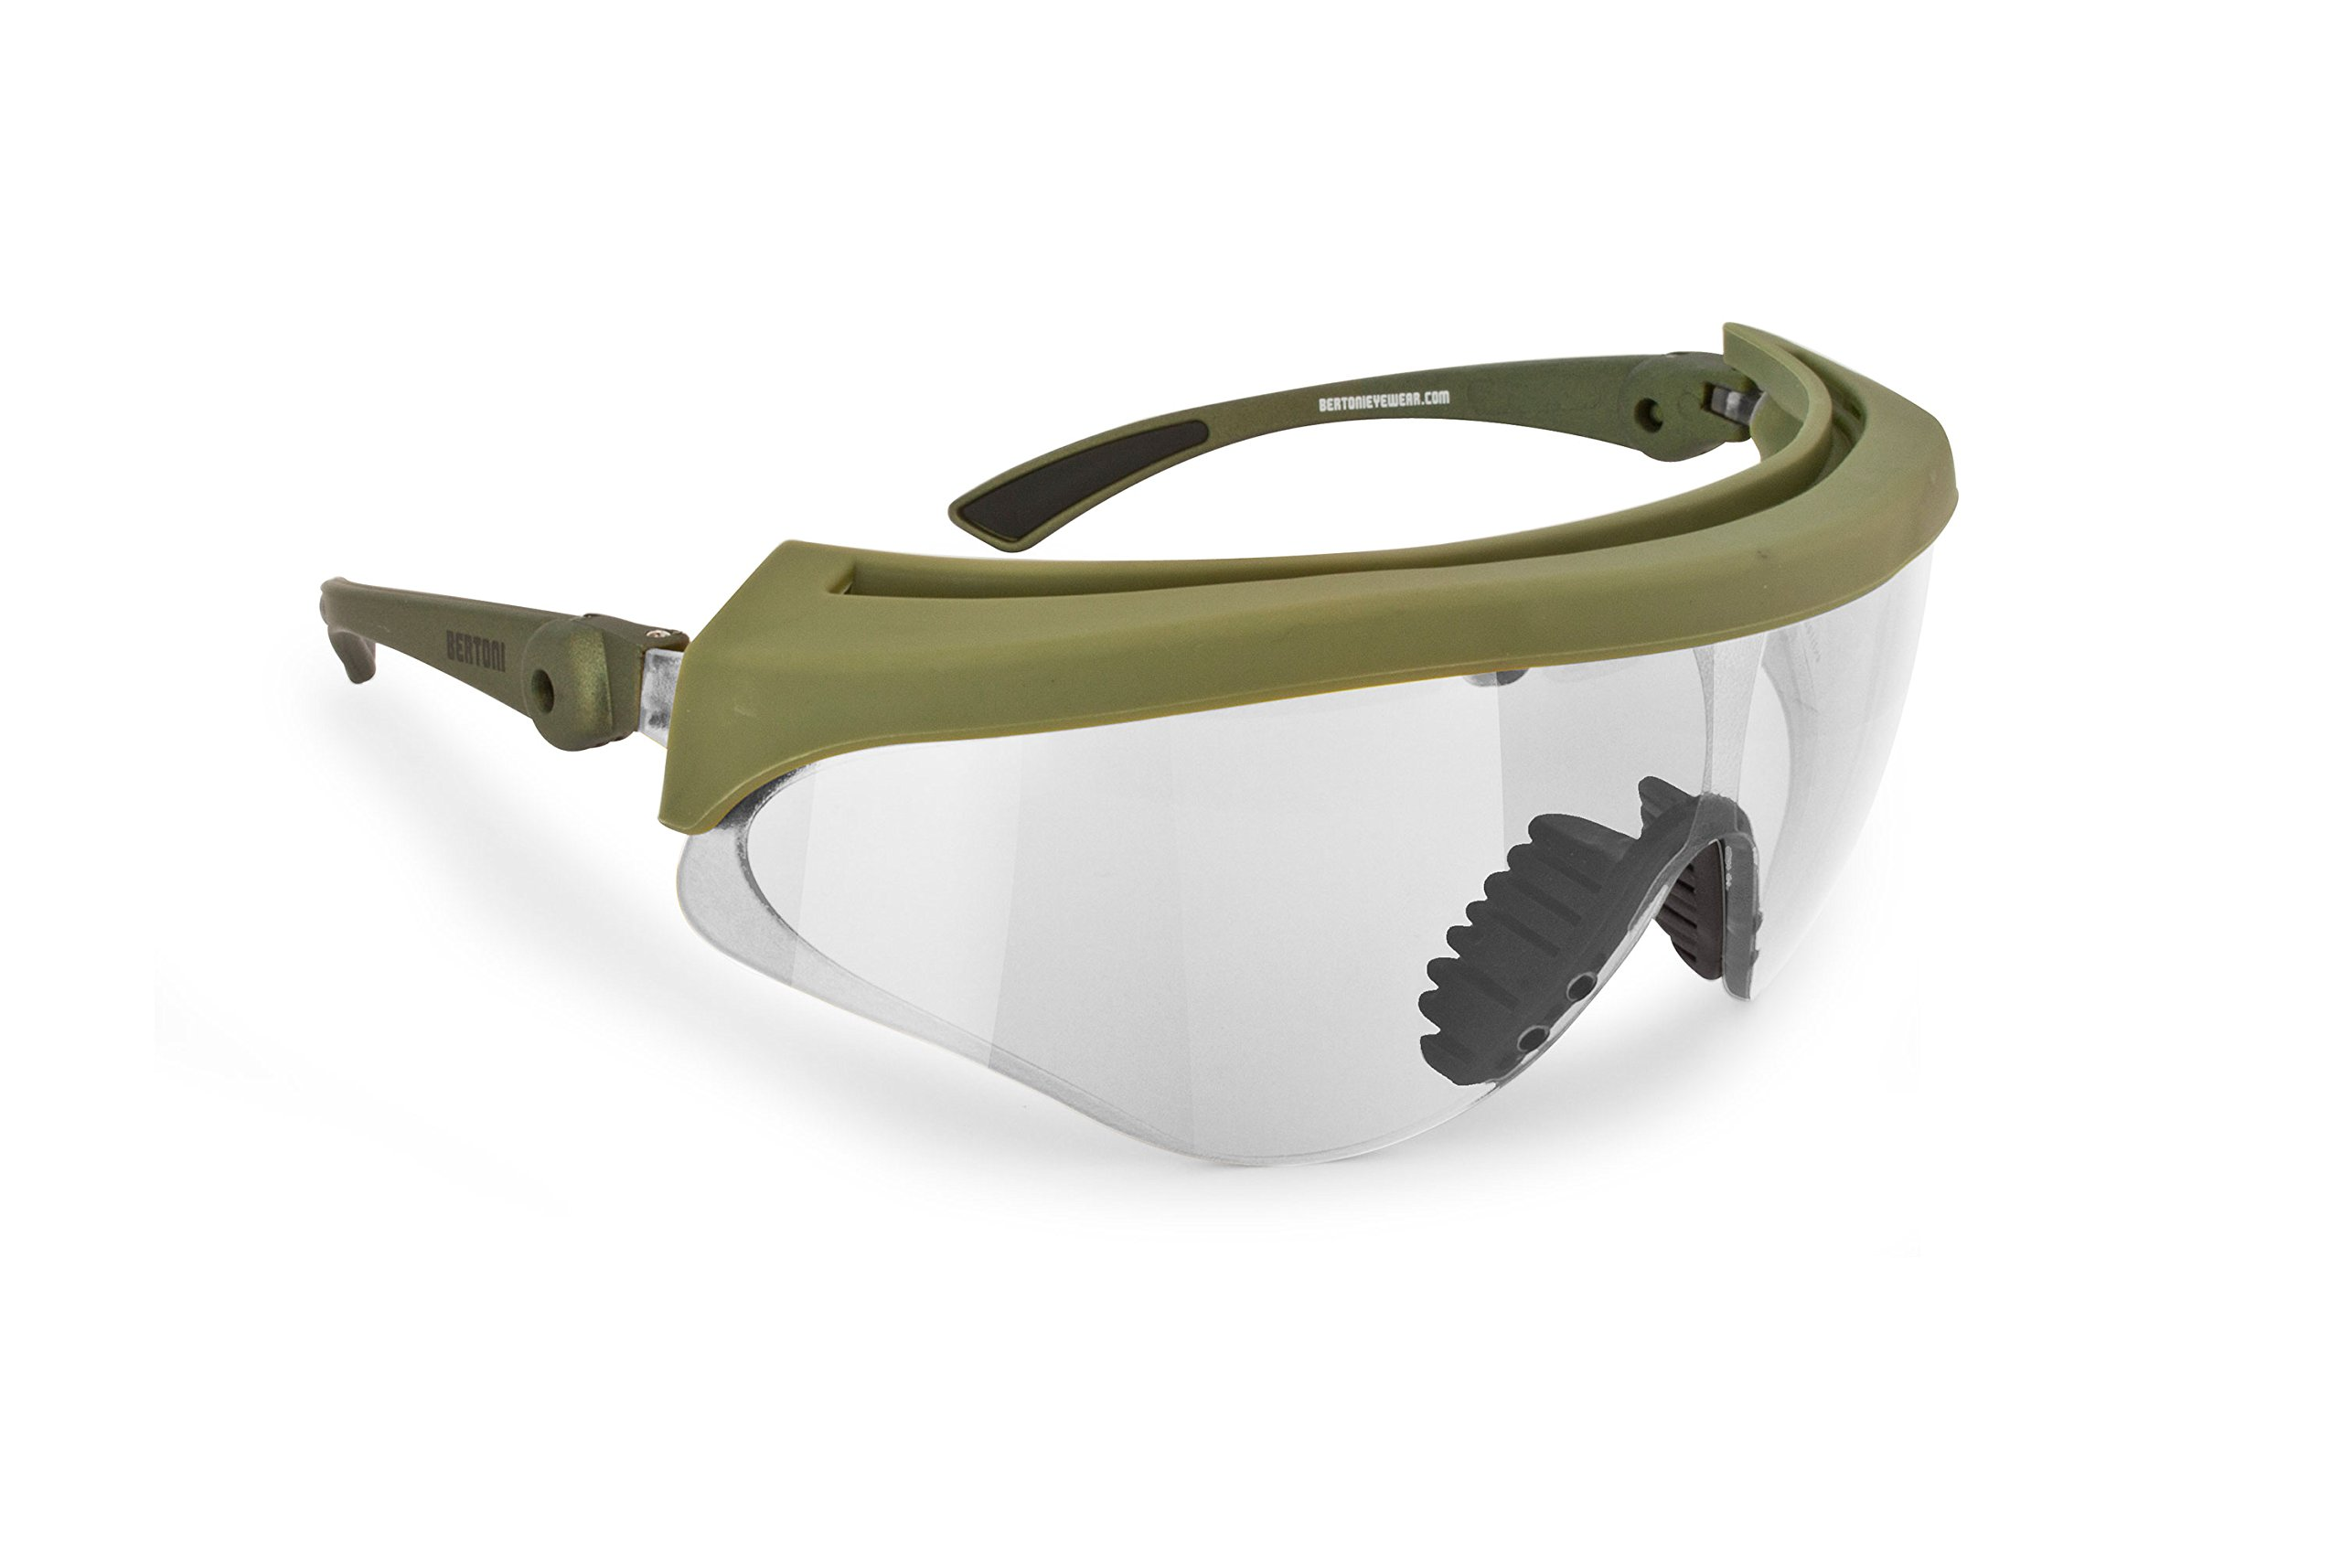 Bertoni Shooting Glasses Shatterproof and Antifog Lens - Adjustable Lens' Angle - AF869 by Italy - Tactical Safety Protective Glasses (Clear Lens)